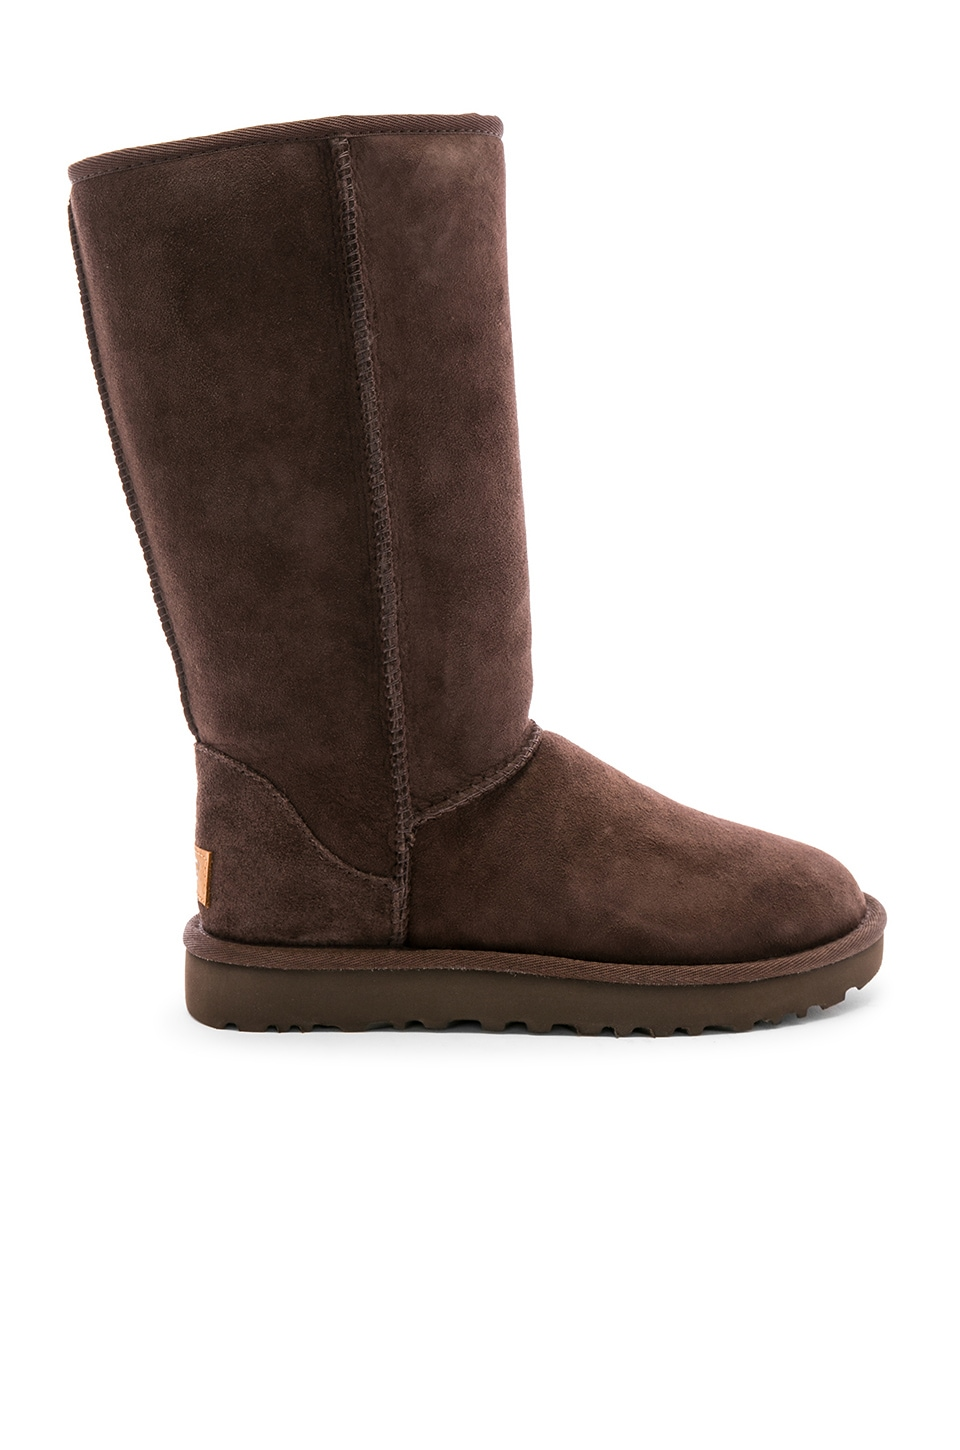 UGG Classic Tall II Boot in Chocolate